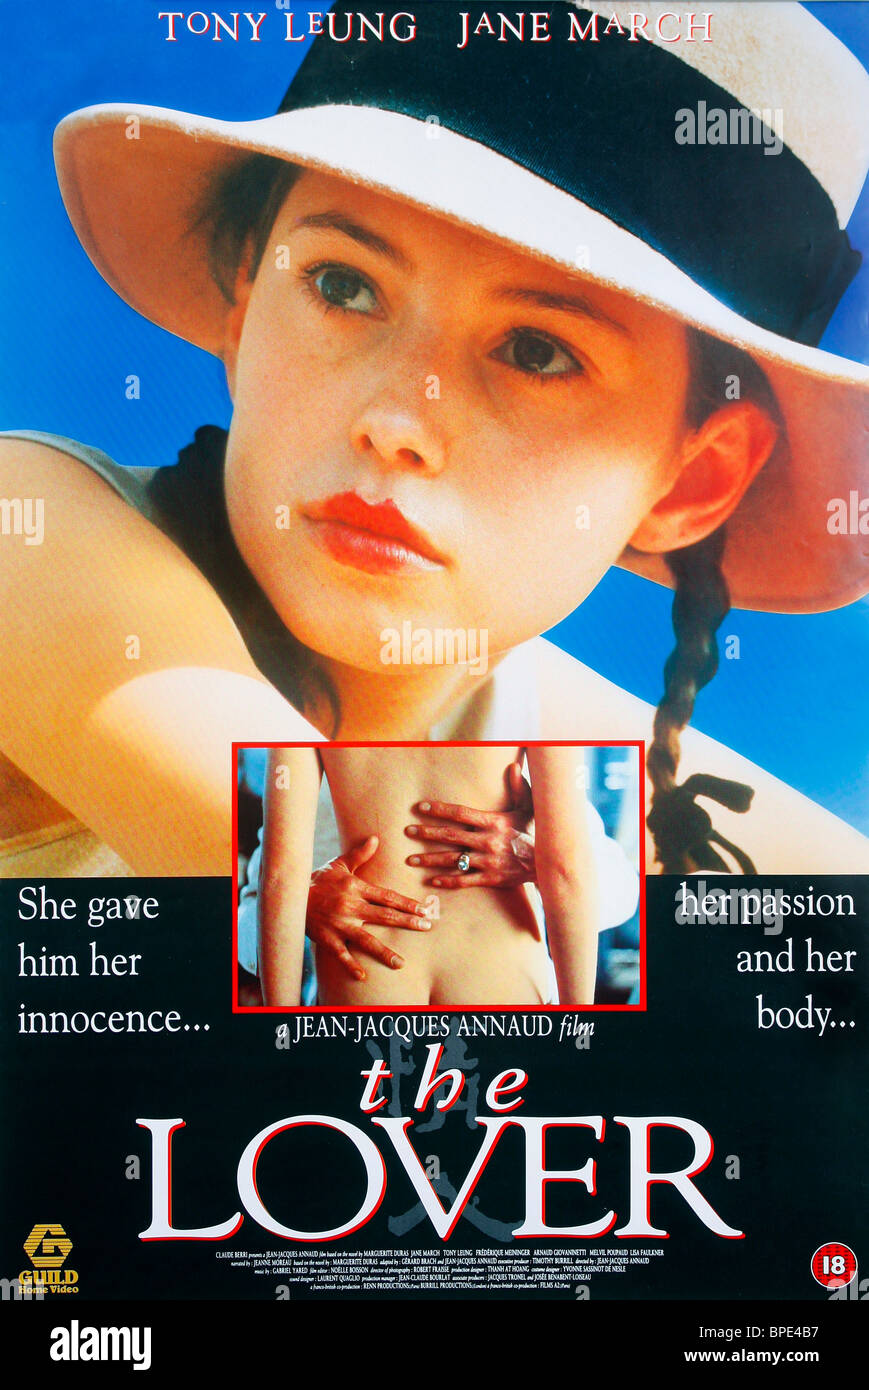 the lover 1992 full movie download